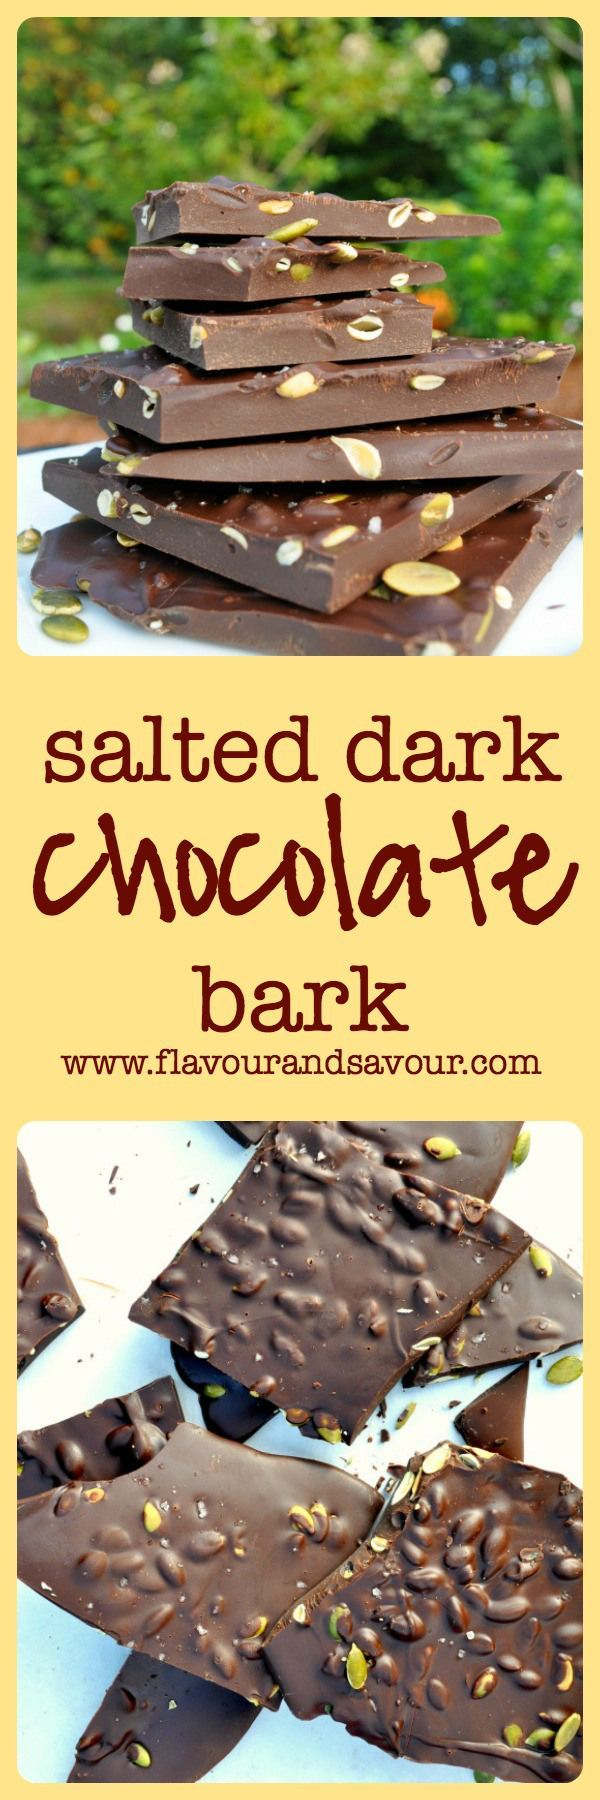 Salted Dark Chocolate Bark with Pumpkin Seeds. Quick and easy cure for a chocolate craving. |www.flavourandsavour.com